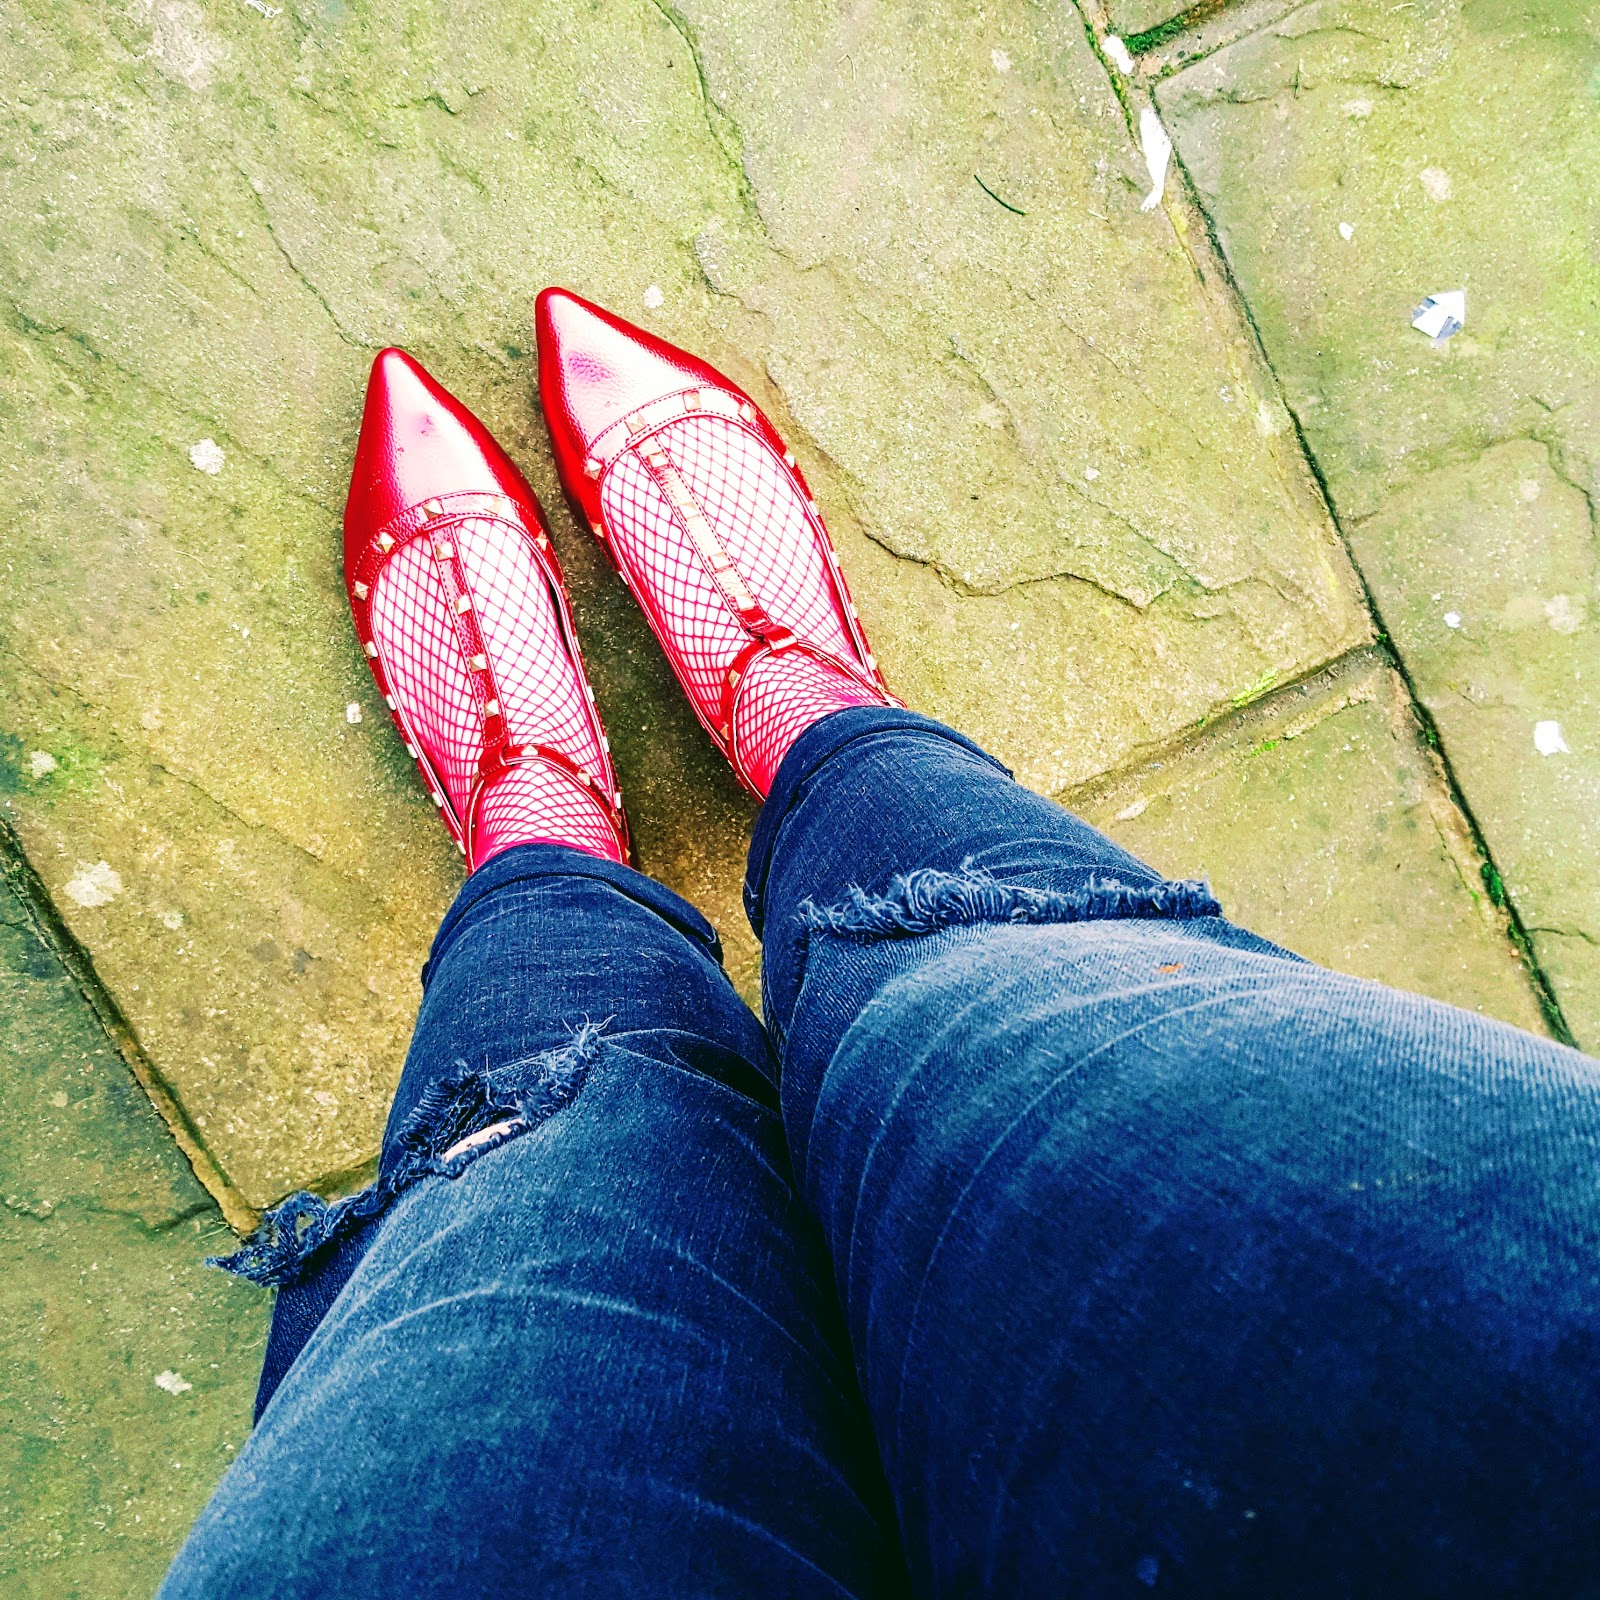 Red Shoes, Red Socks